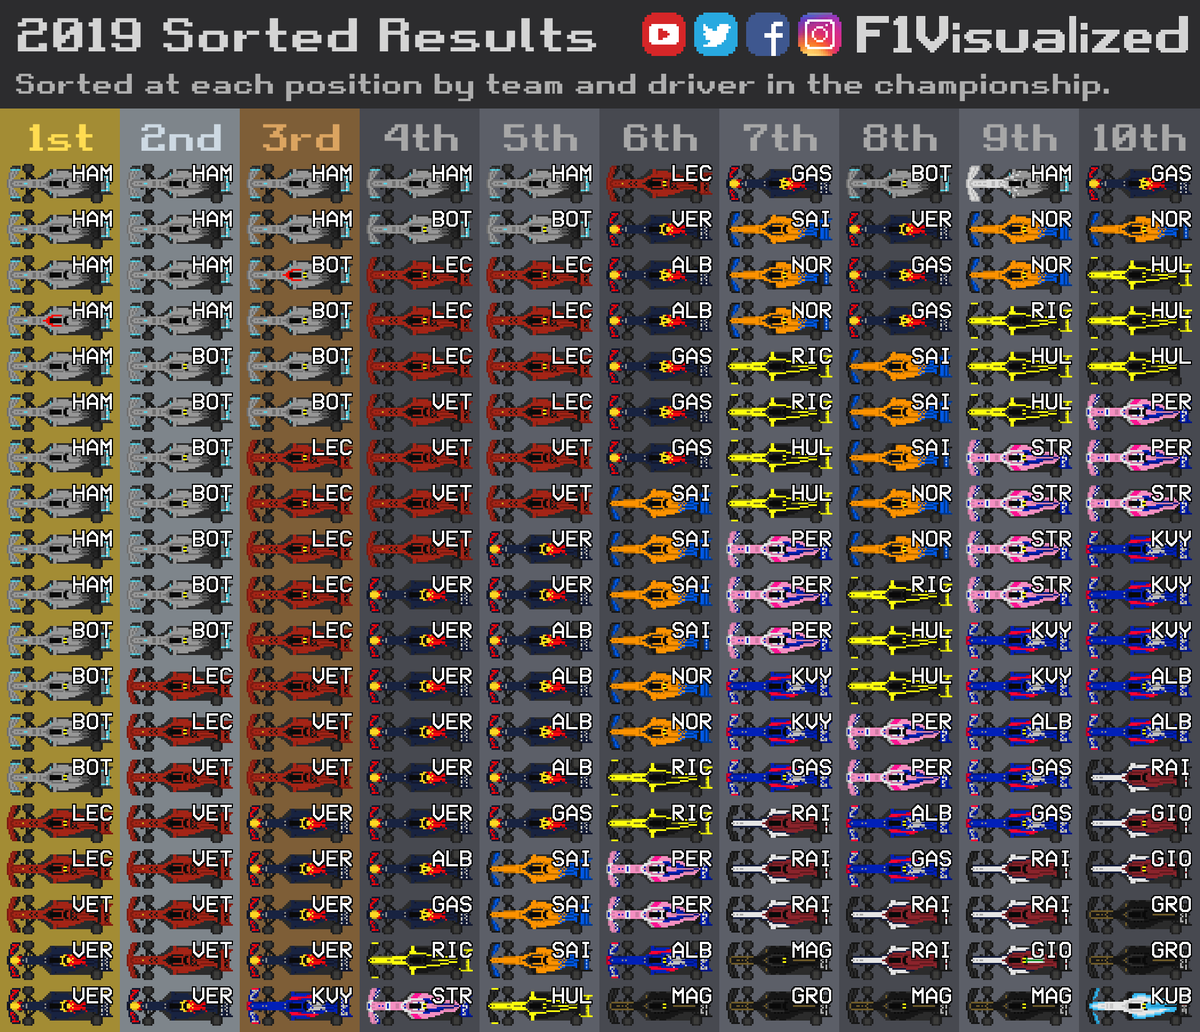 F1visualized On Twitter 2019 Sorted Results After 19 Races F1 Formula1